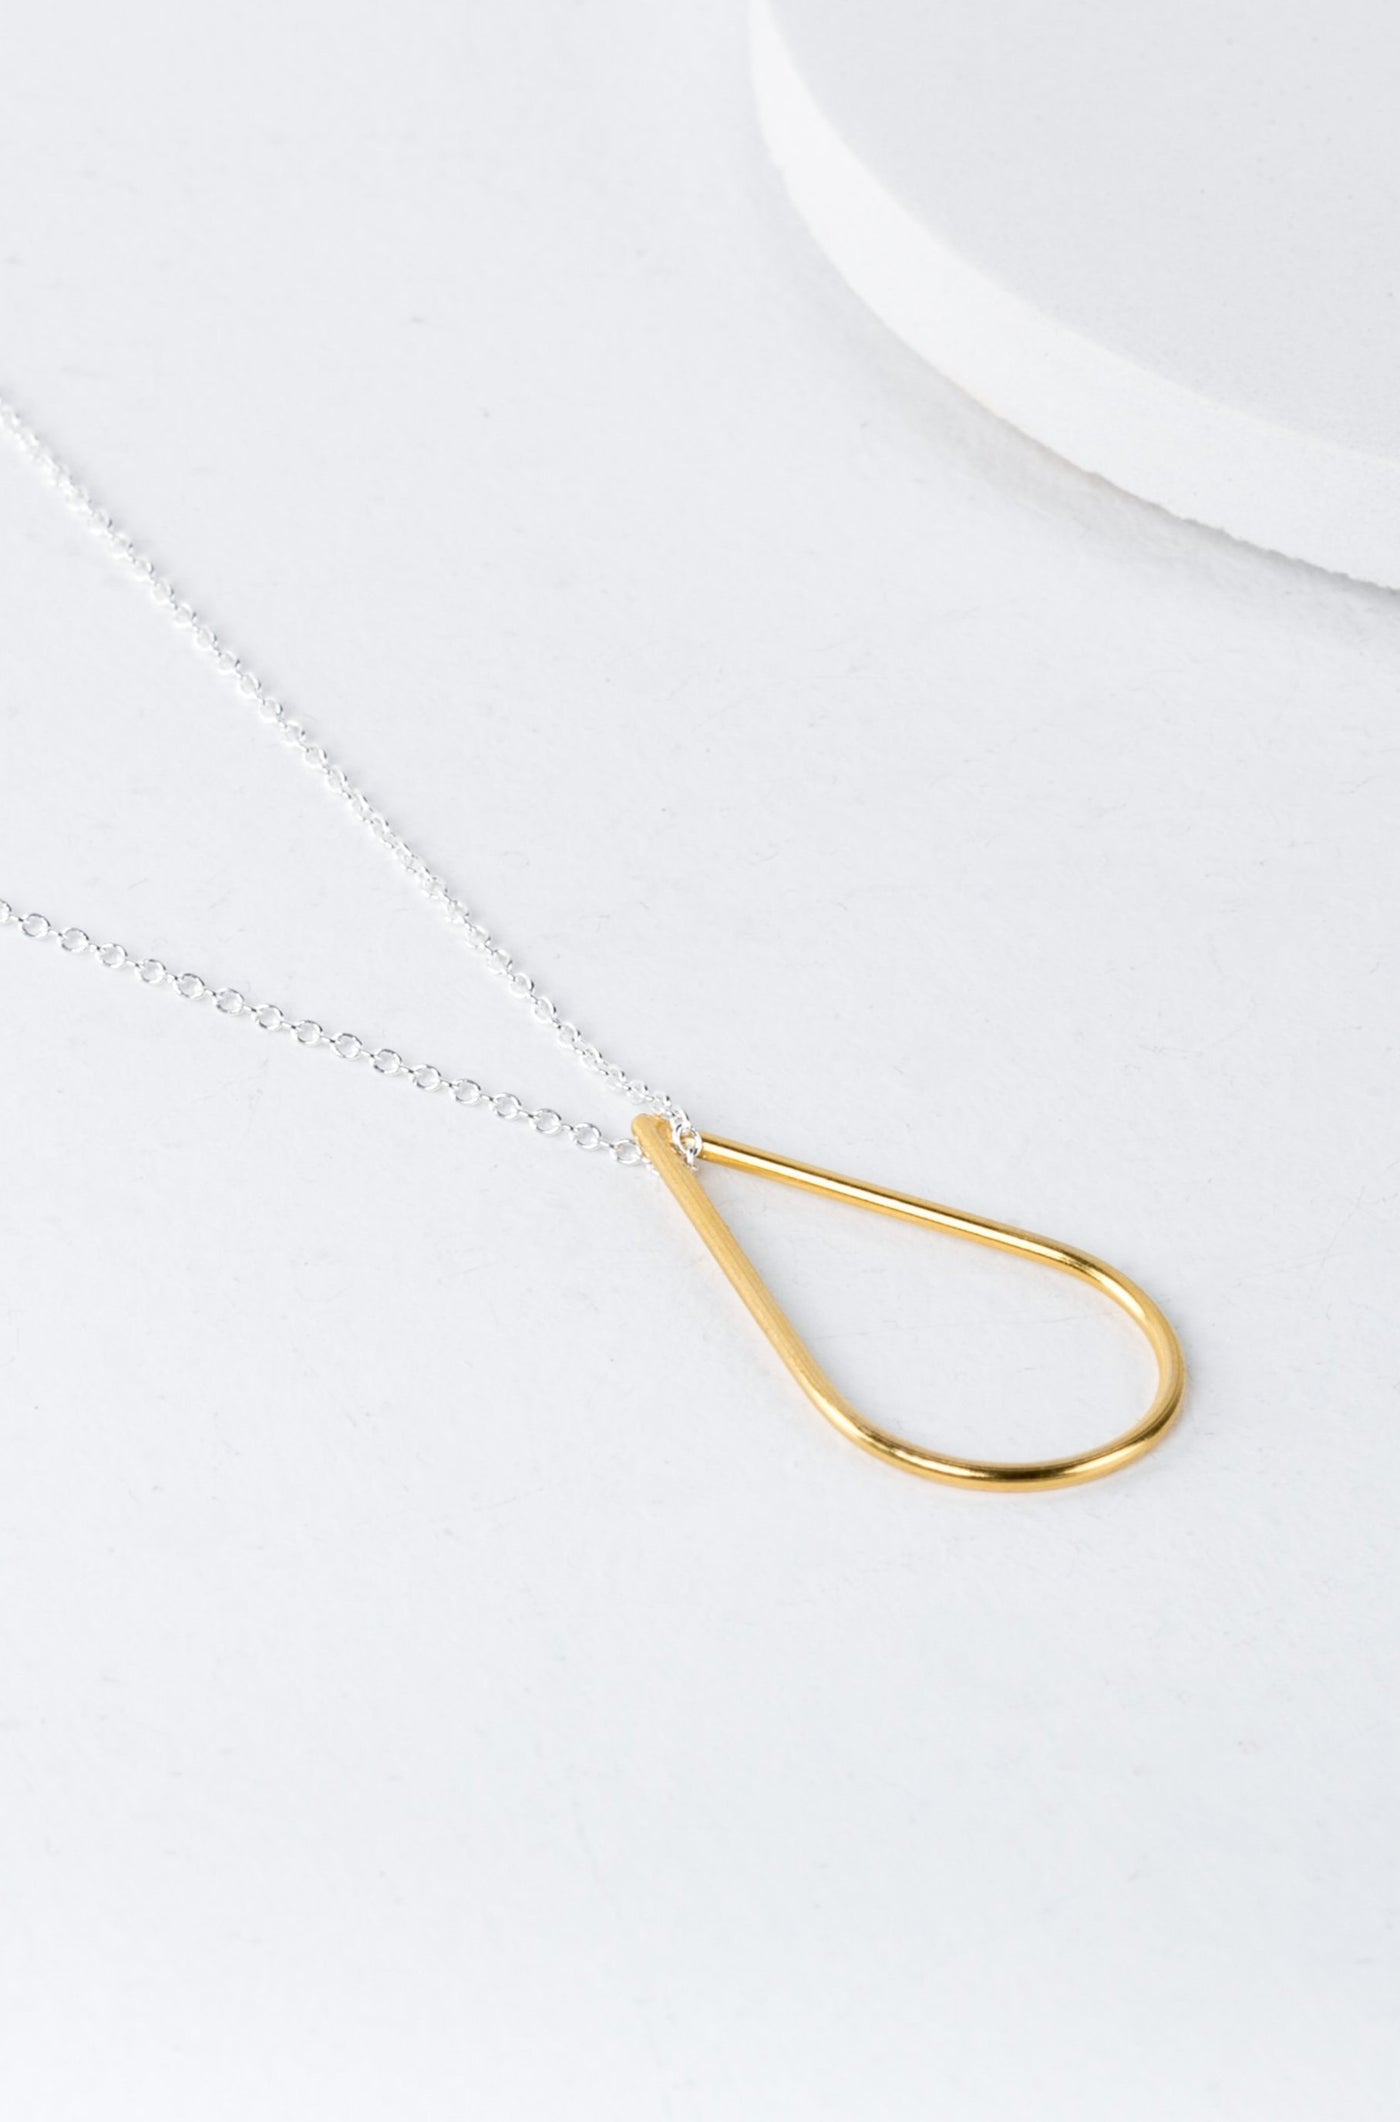 Silver and Gold Teardrop Necklace